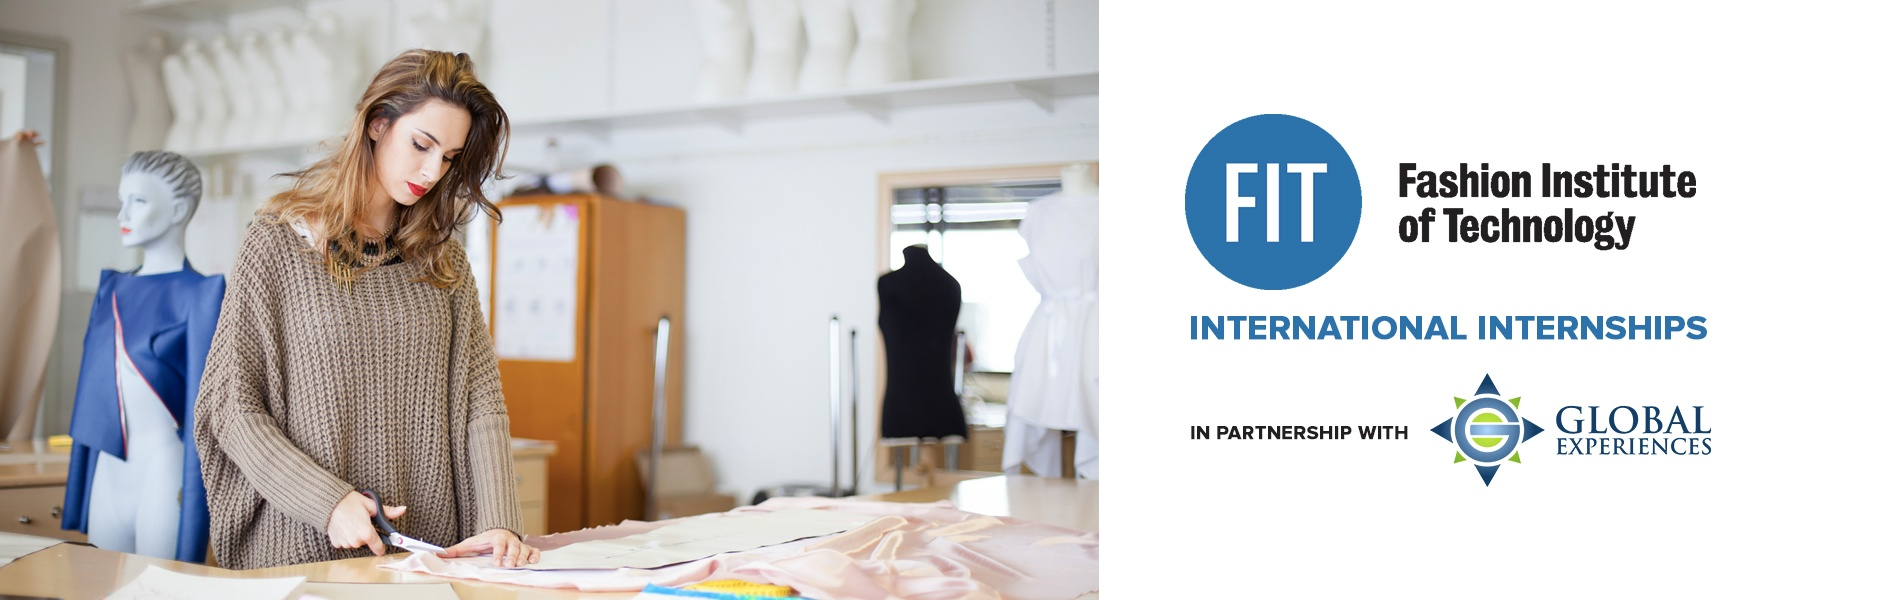 Fashion Institution of Technology Internships FIT Fashion Internship